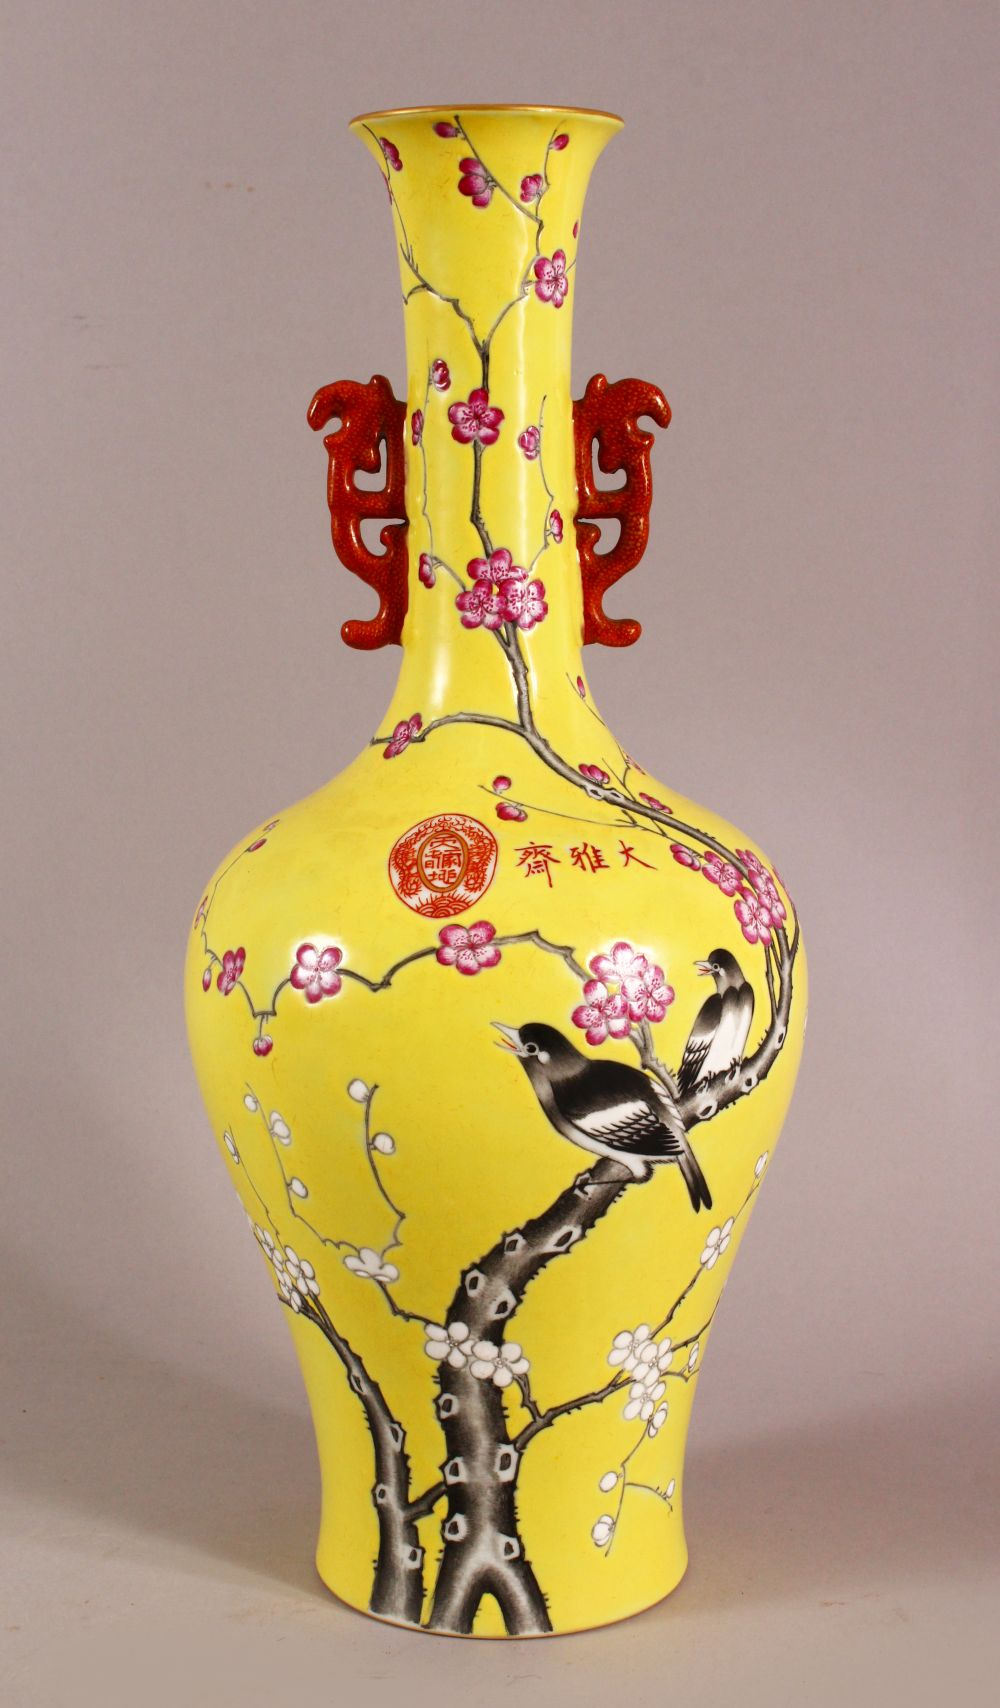 A CHINESE YELLOW GLAZED FAMILLE ROSE PORCELAIN VASE, decorated with birds in trees, with a mark